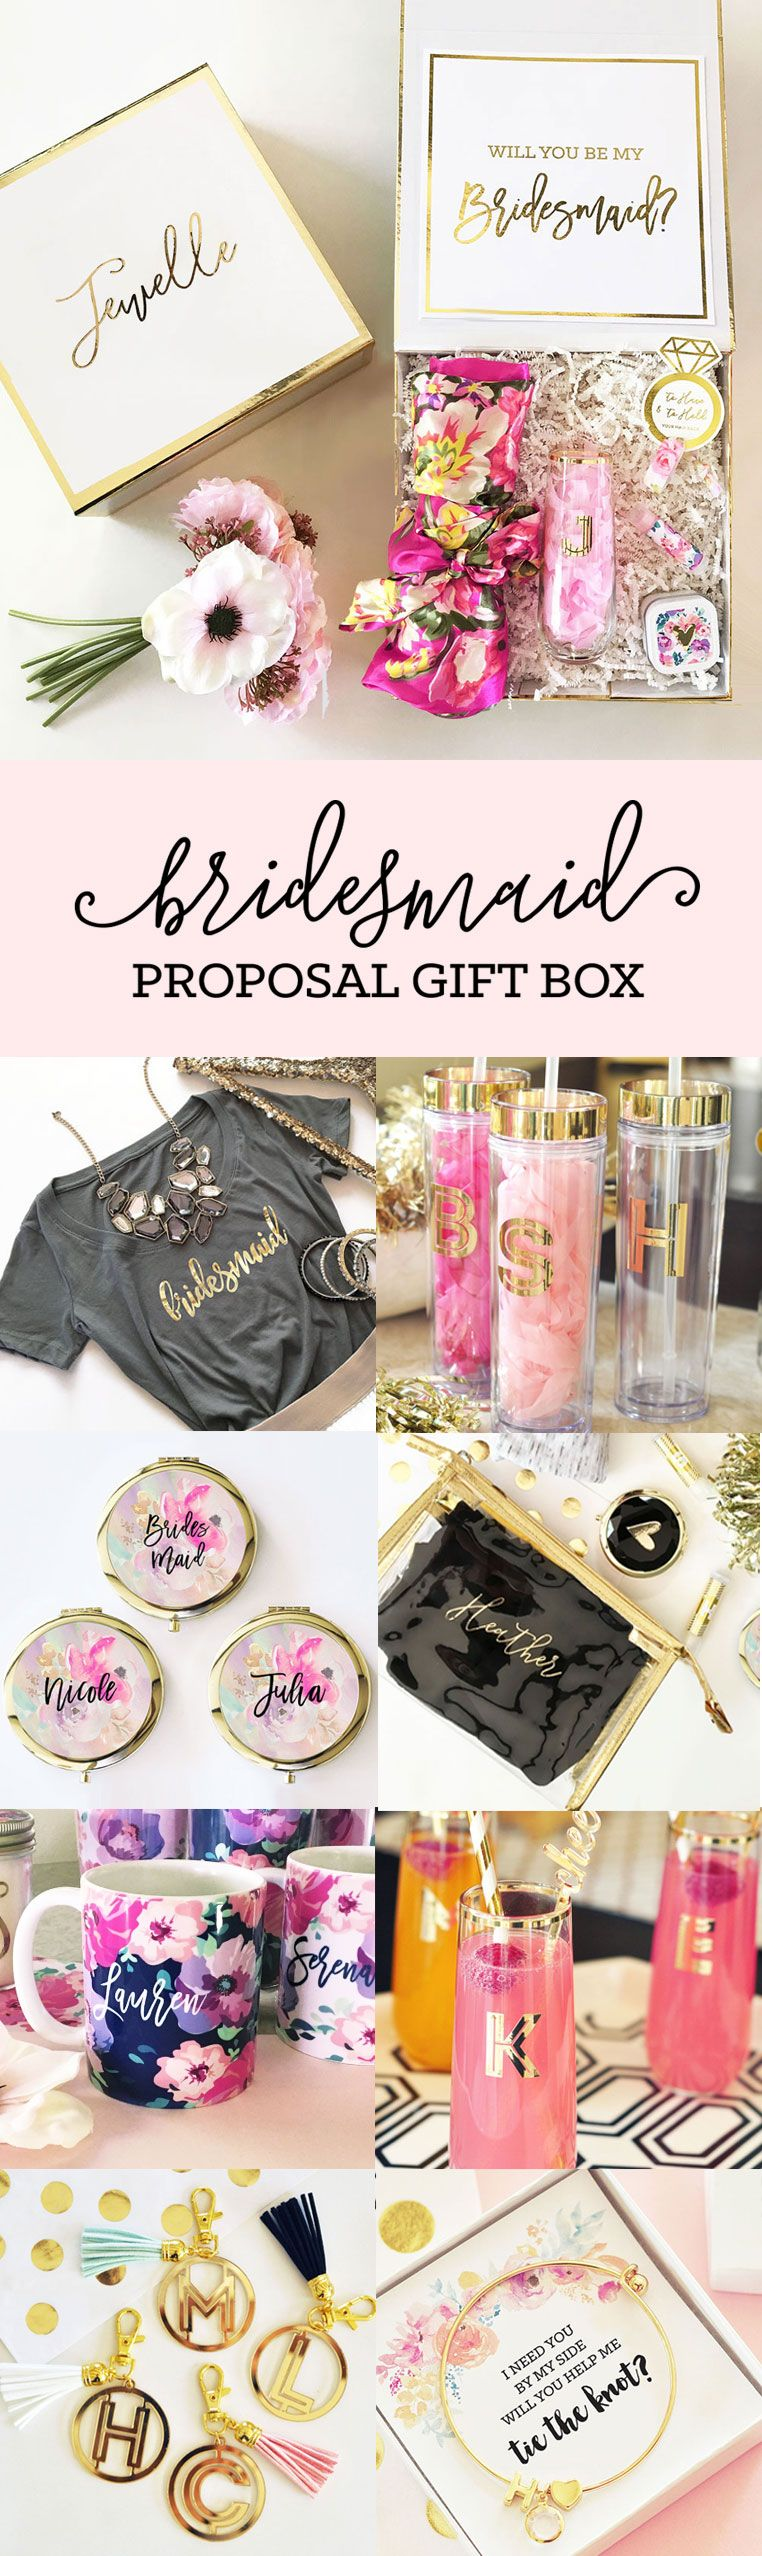 Personalized Gift Box | Bridesmaid proposal gifts, Wedding and Weddings